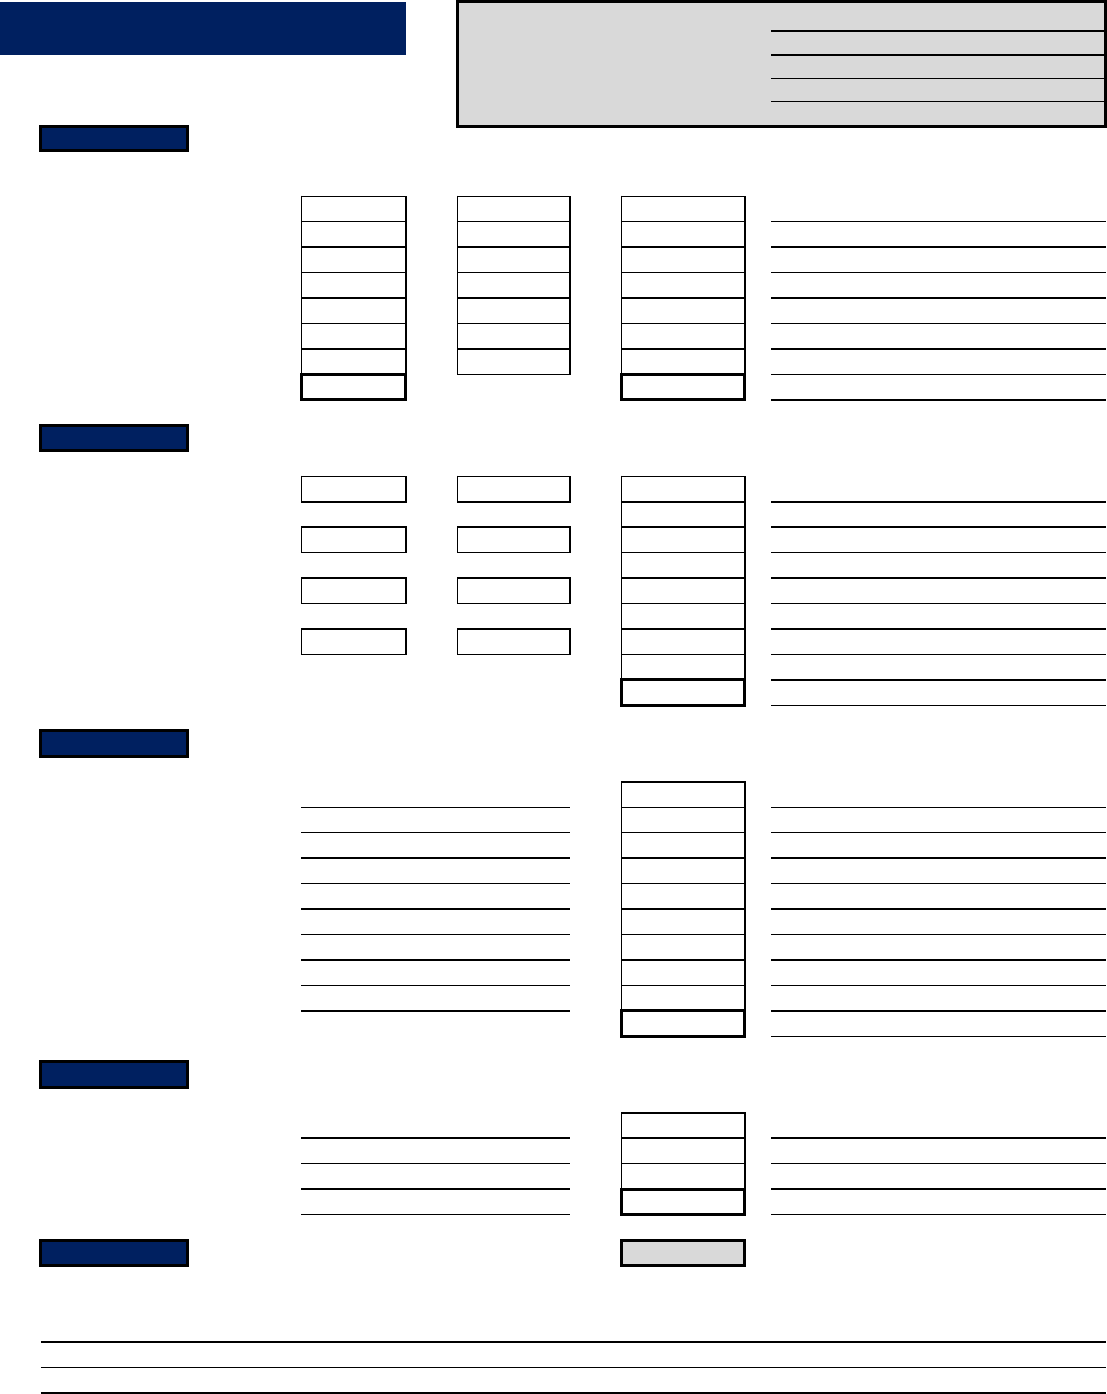 How To Make A Cost Analysis Spreadsheet Free Cost Benefit Analysis Templates